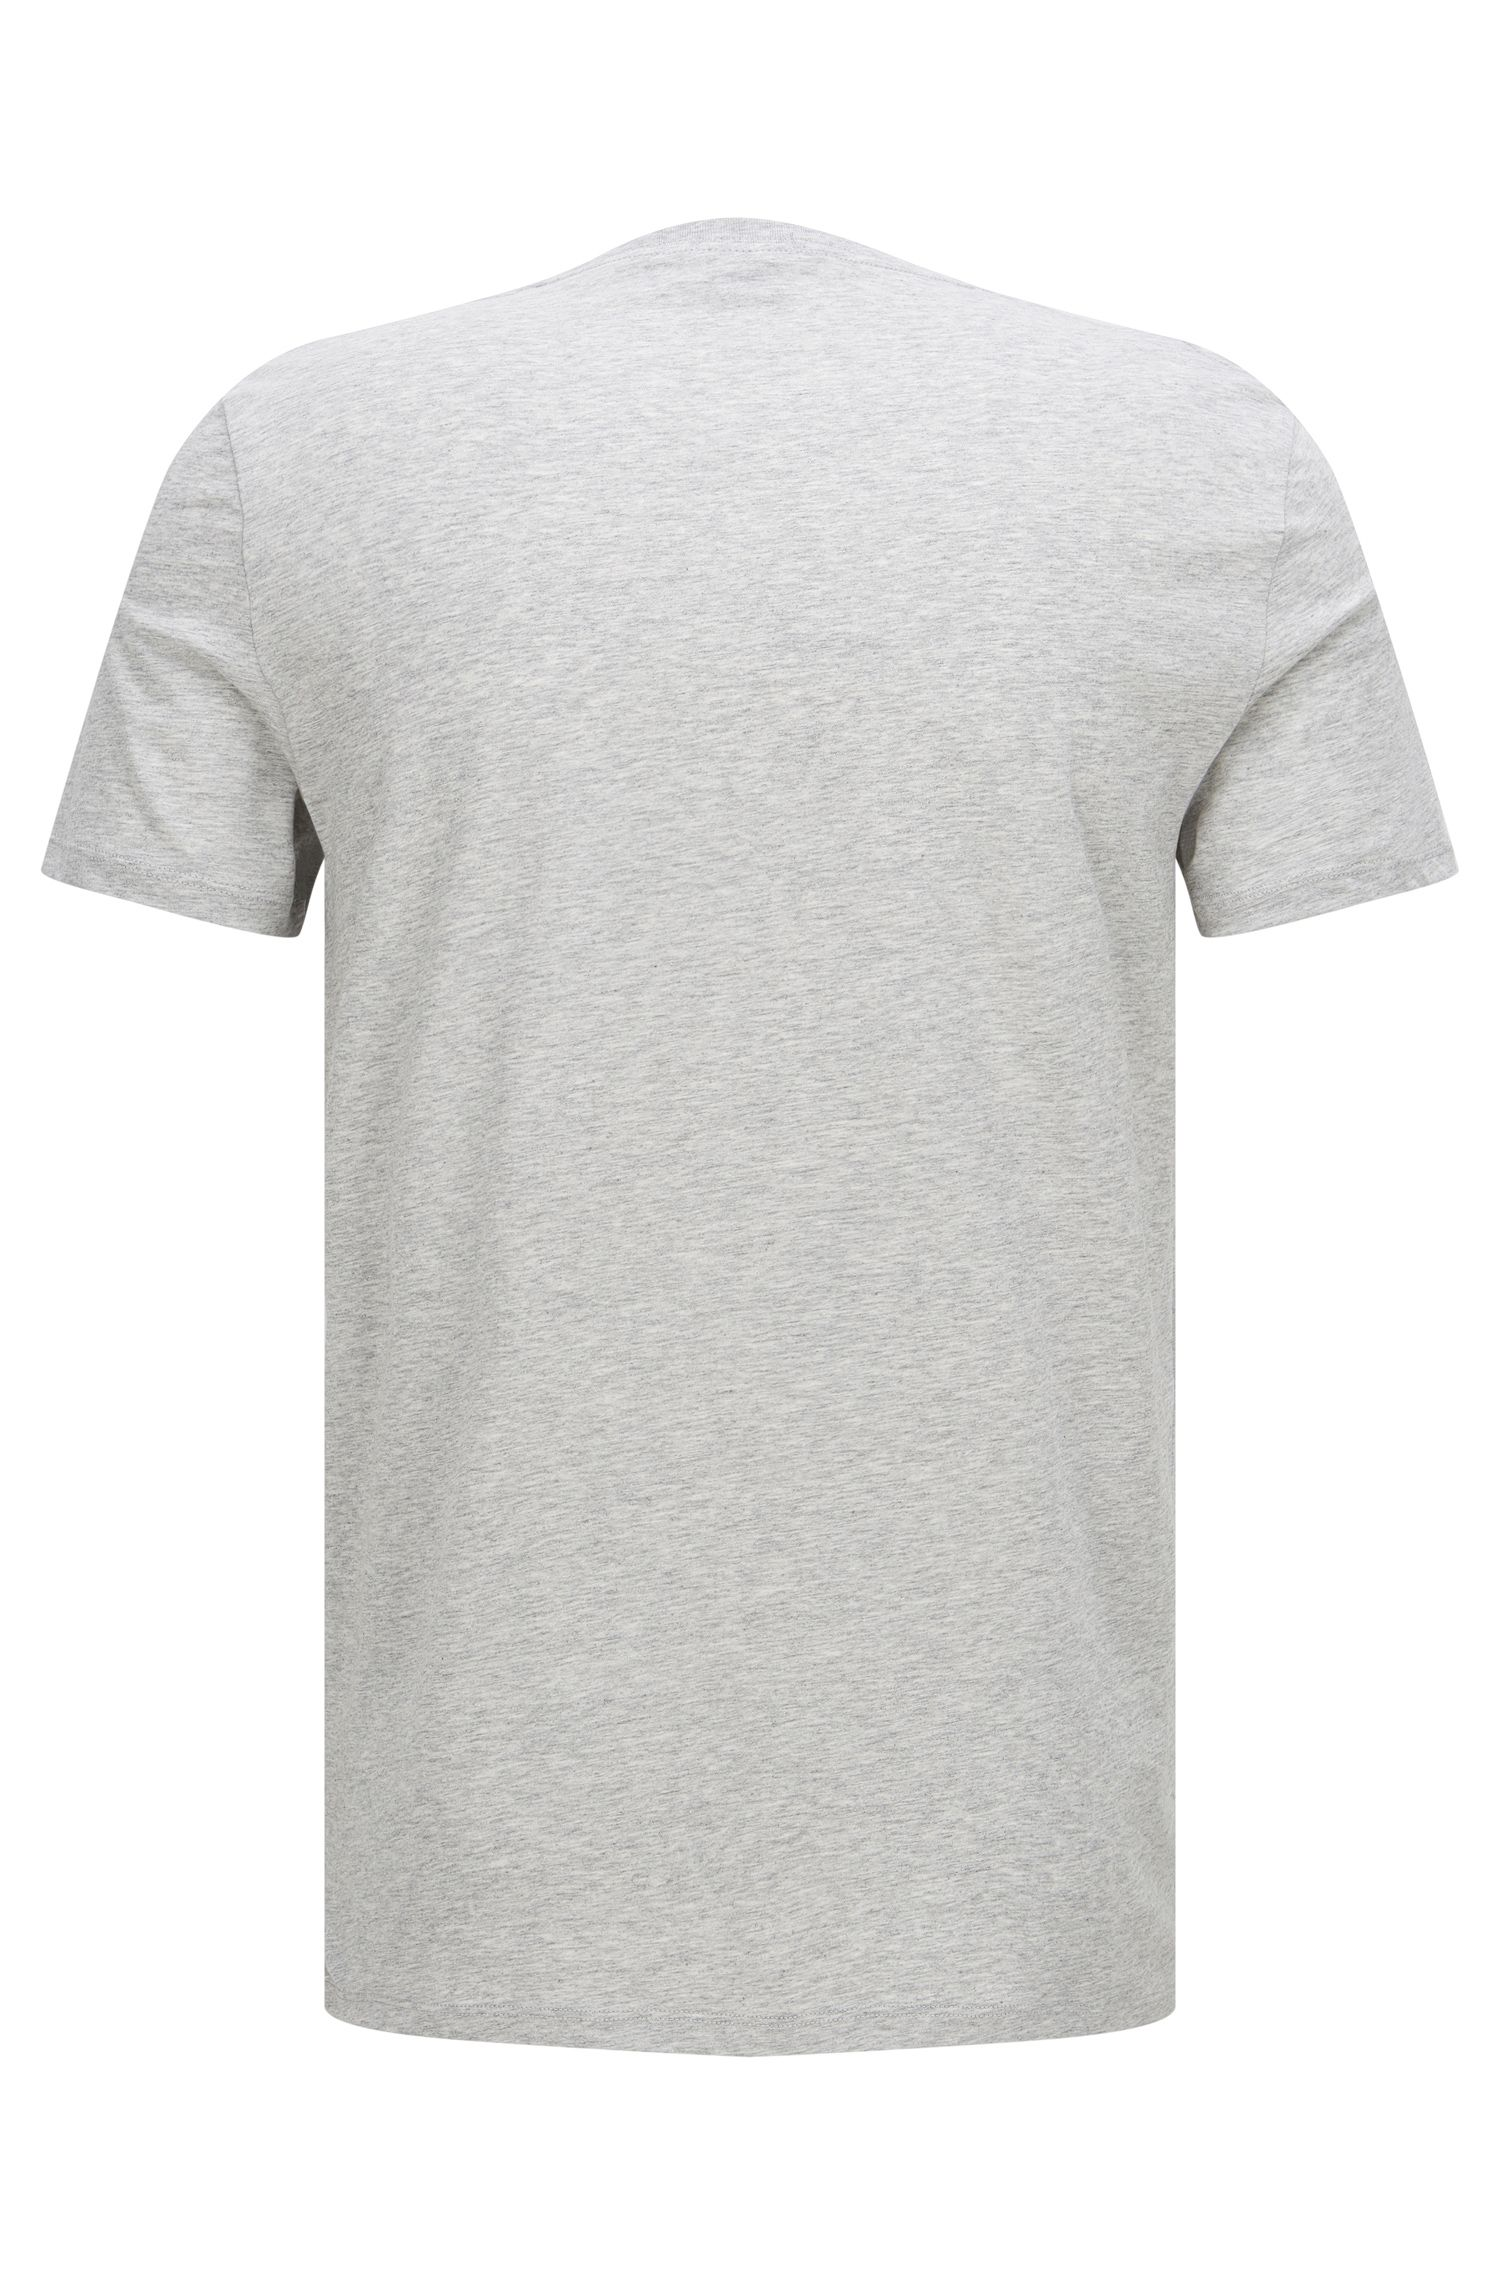 Regular-fit T-shirt in single jersey